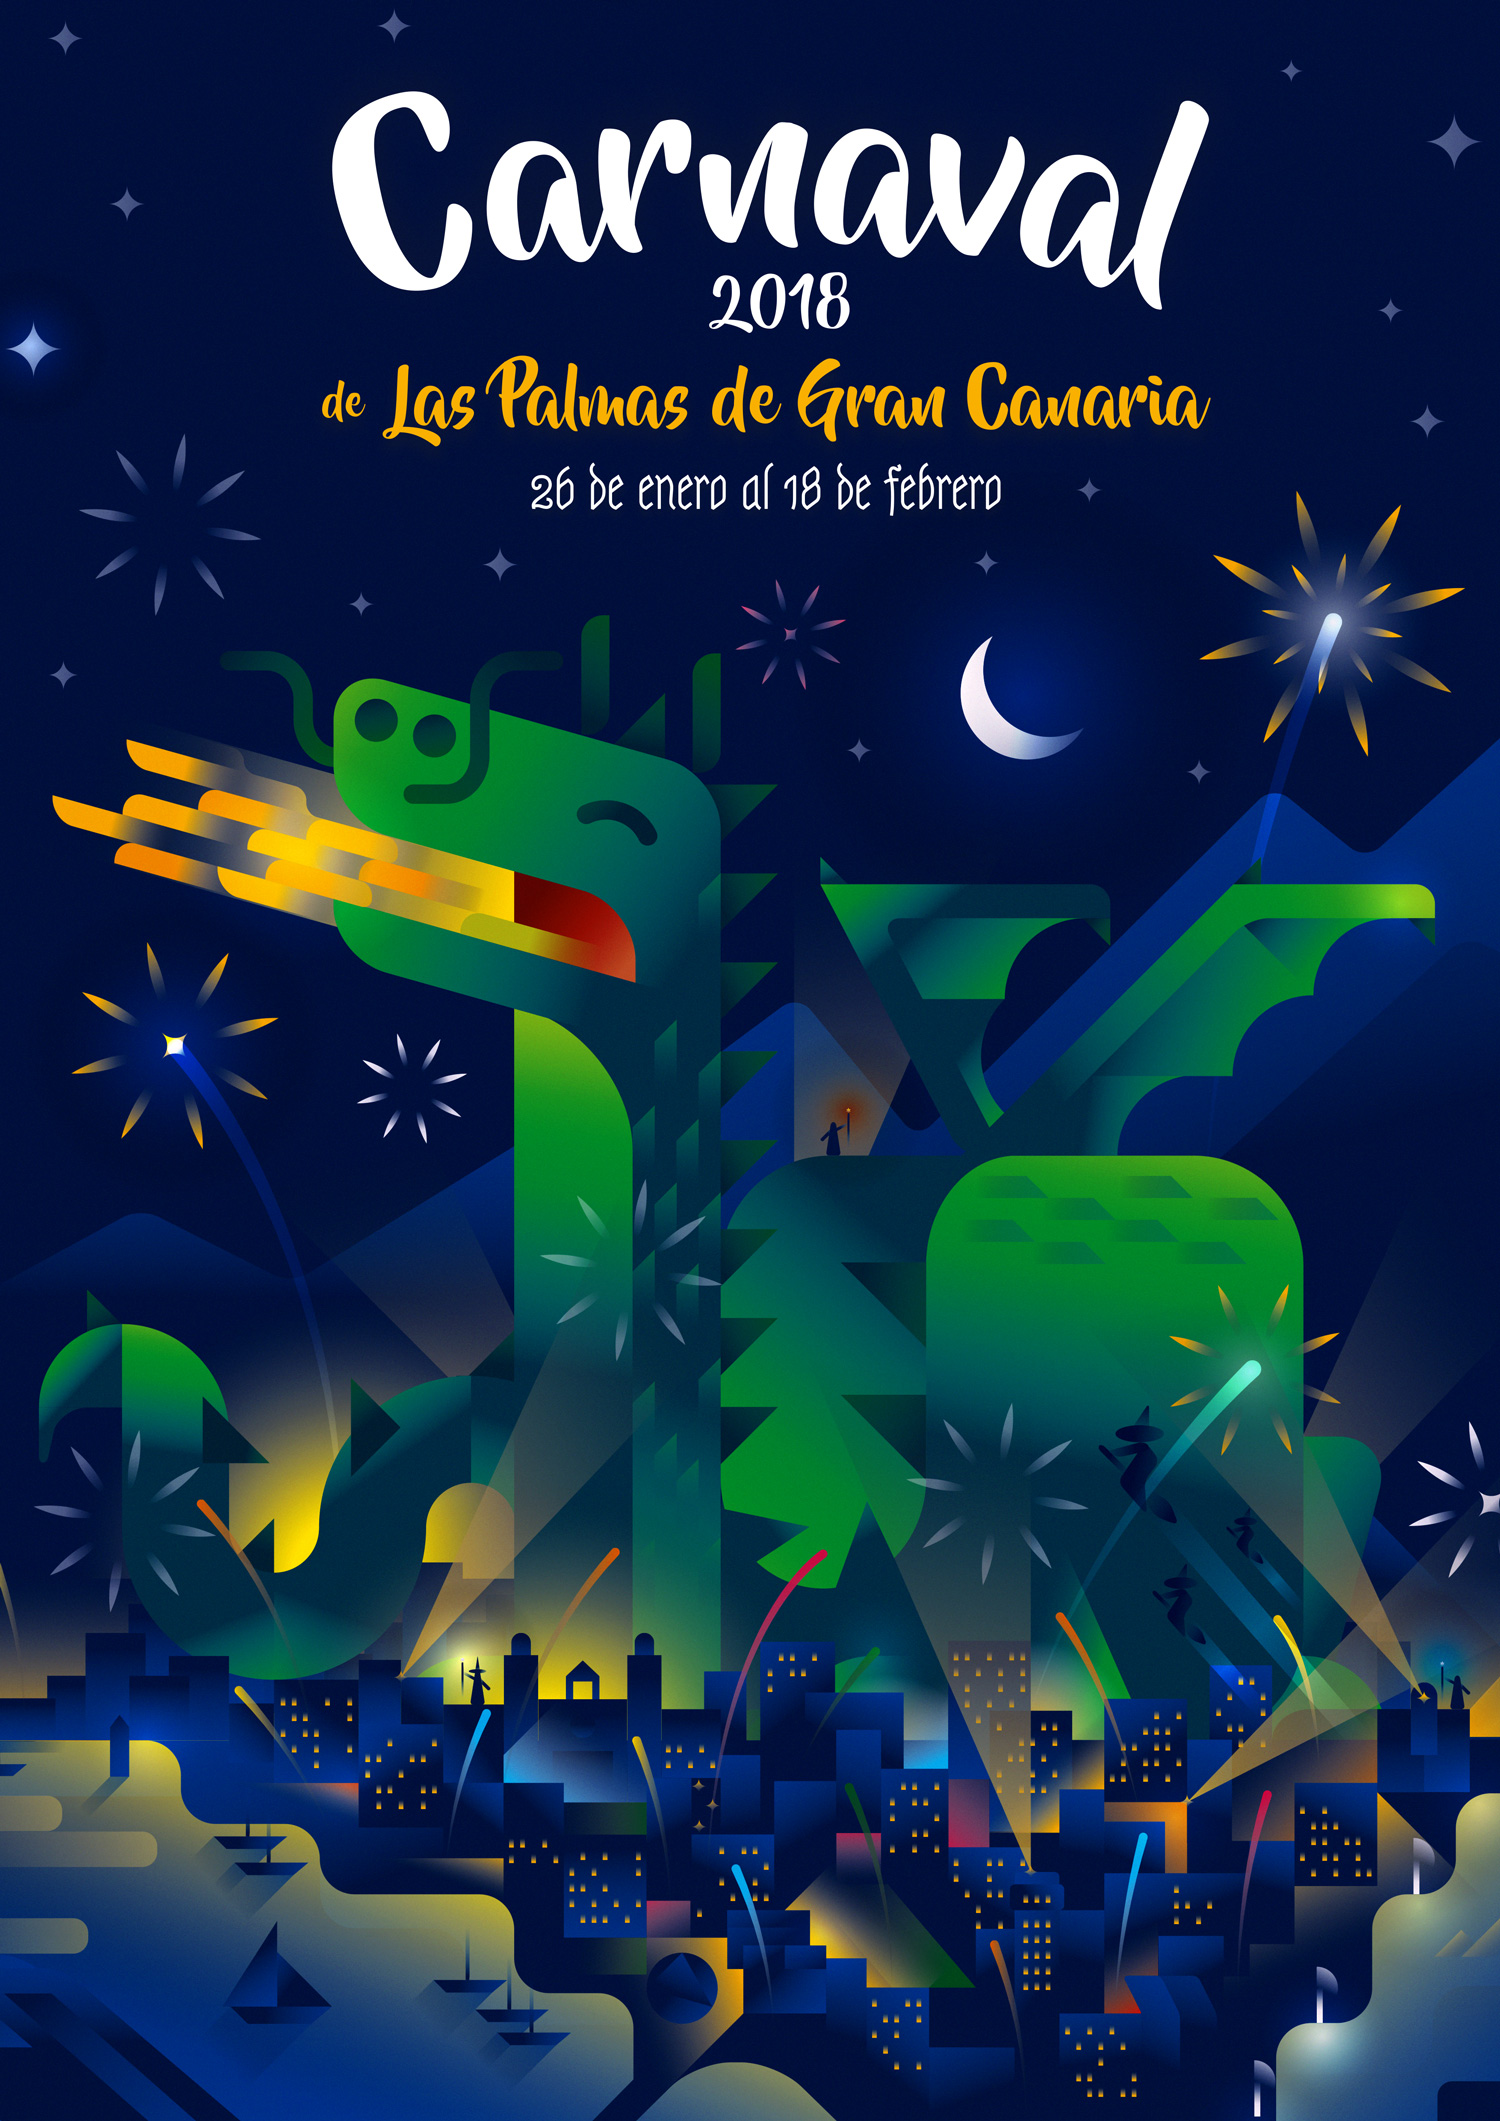 Winner illustration for the contest of Las Palmas de Gran Canaria's Carnival in 2018, , illustration by Francesco Faggiano illustrator